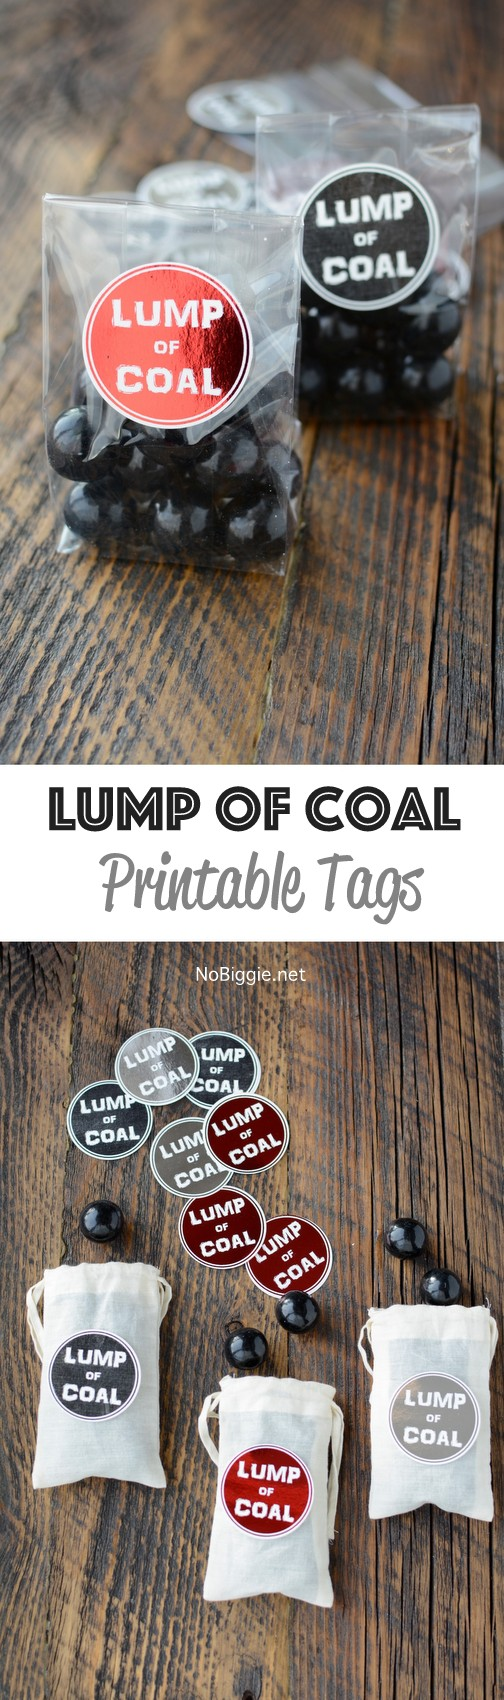 lump of coal printable gift tag | NoBiggie.net